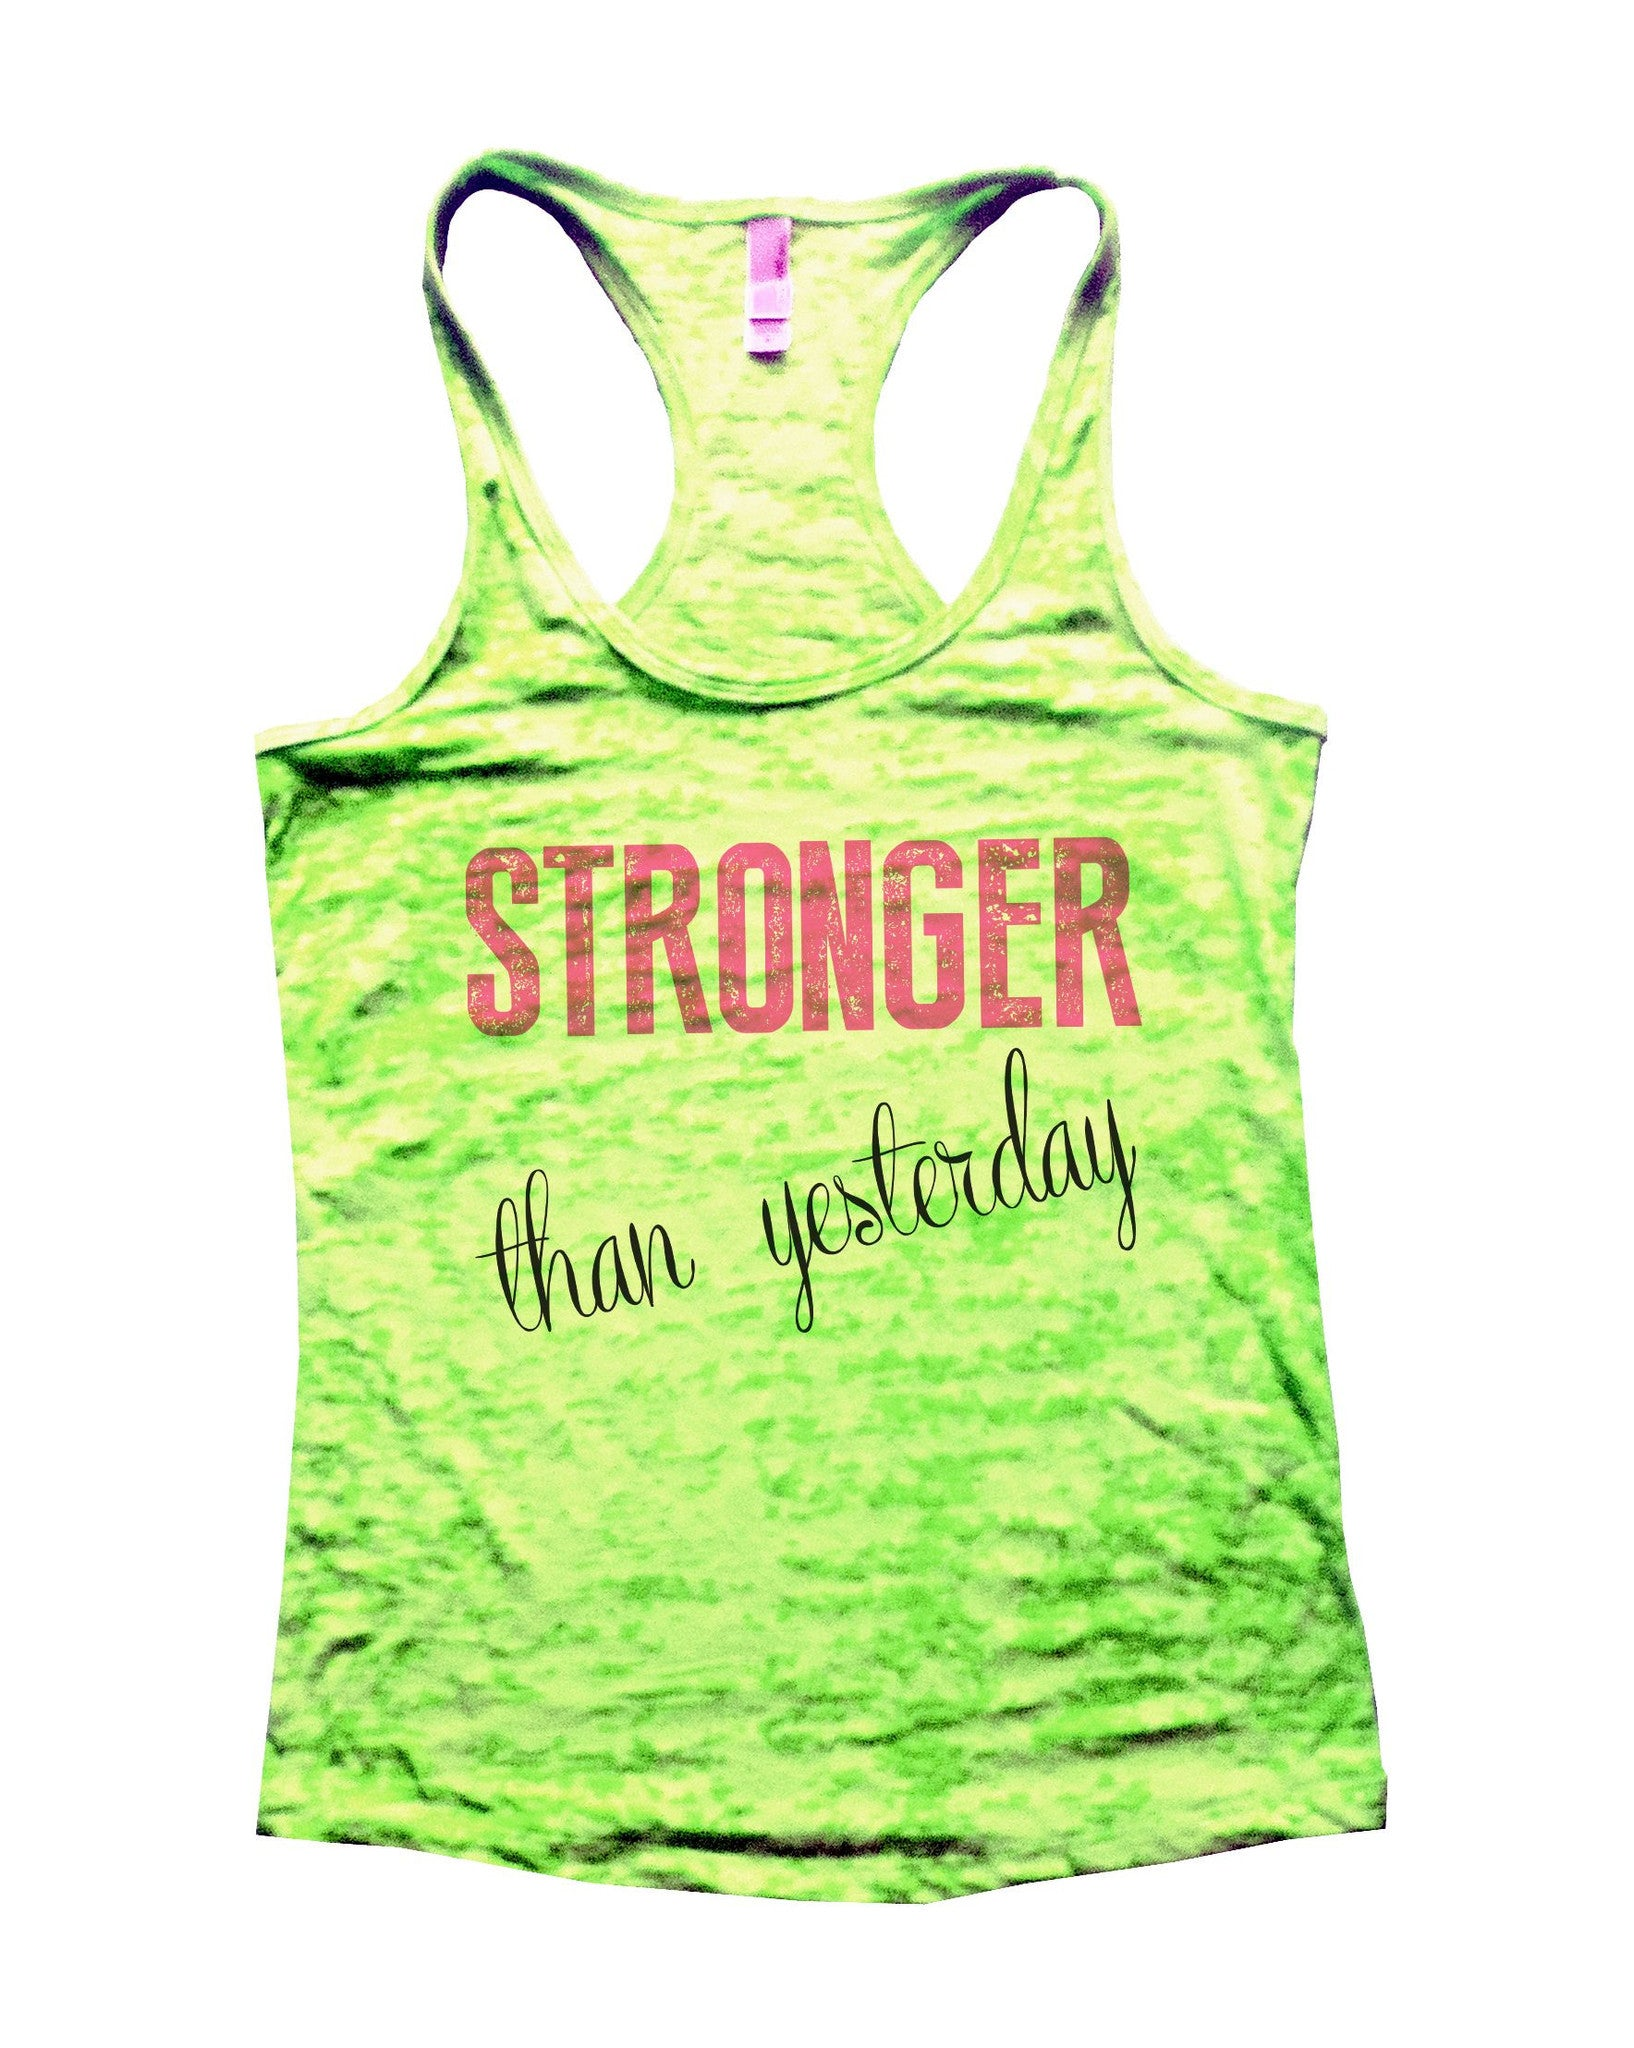 Stronger Than Yesterday Burnout Tank Top By BurnoutTankTops.com - 768 - Funny Shirts Tank Tops Burnouts and Triblends  - 2